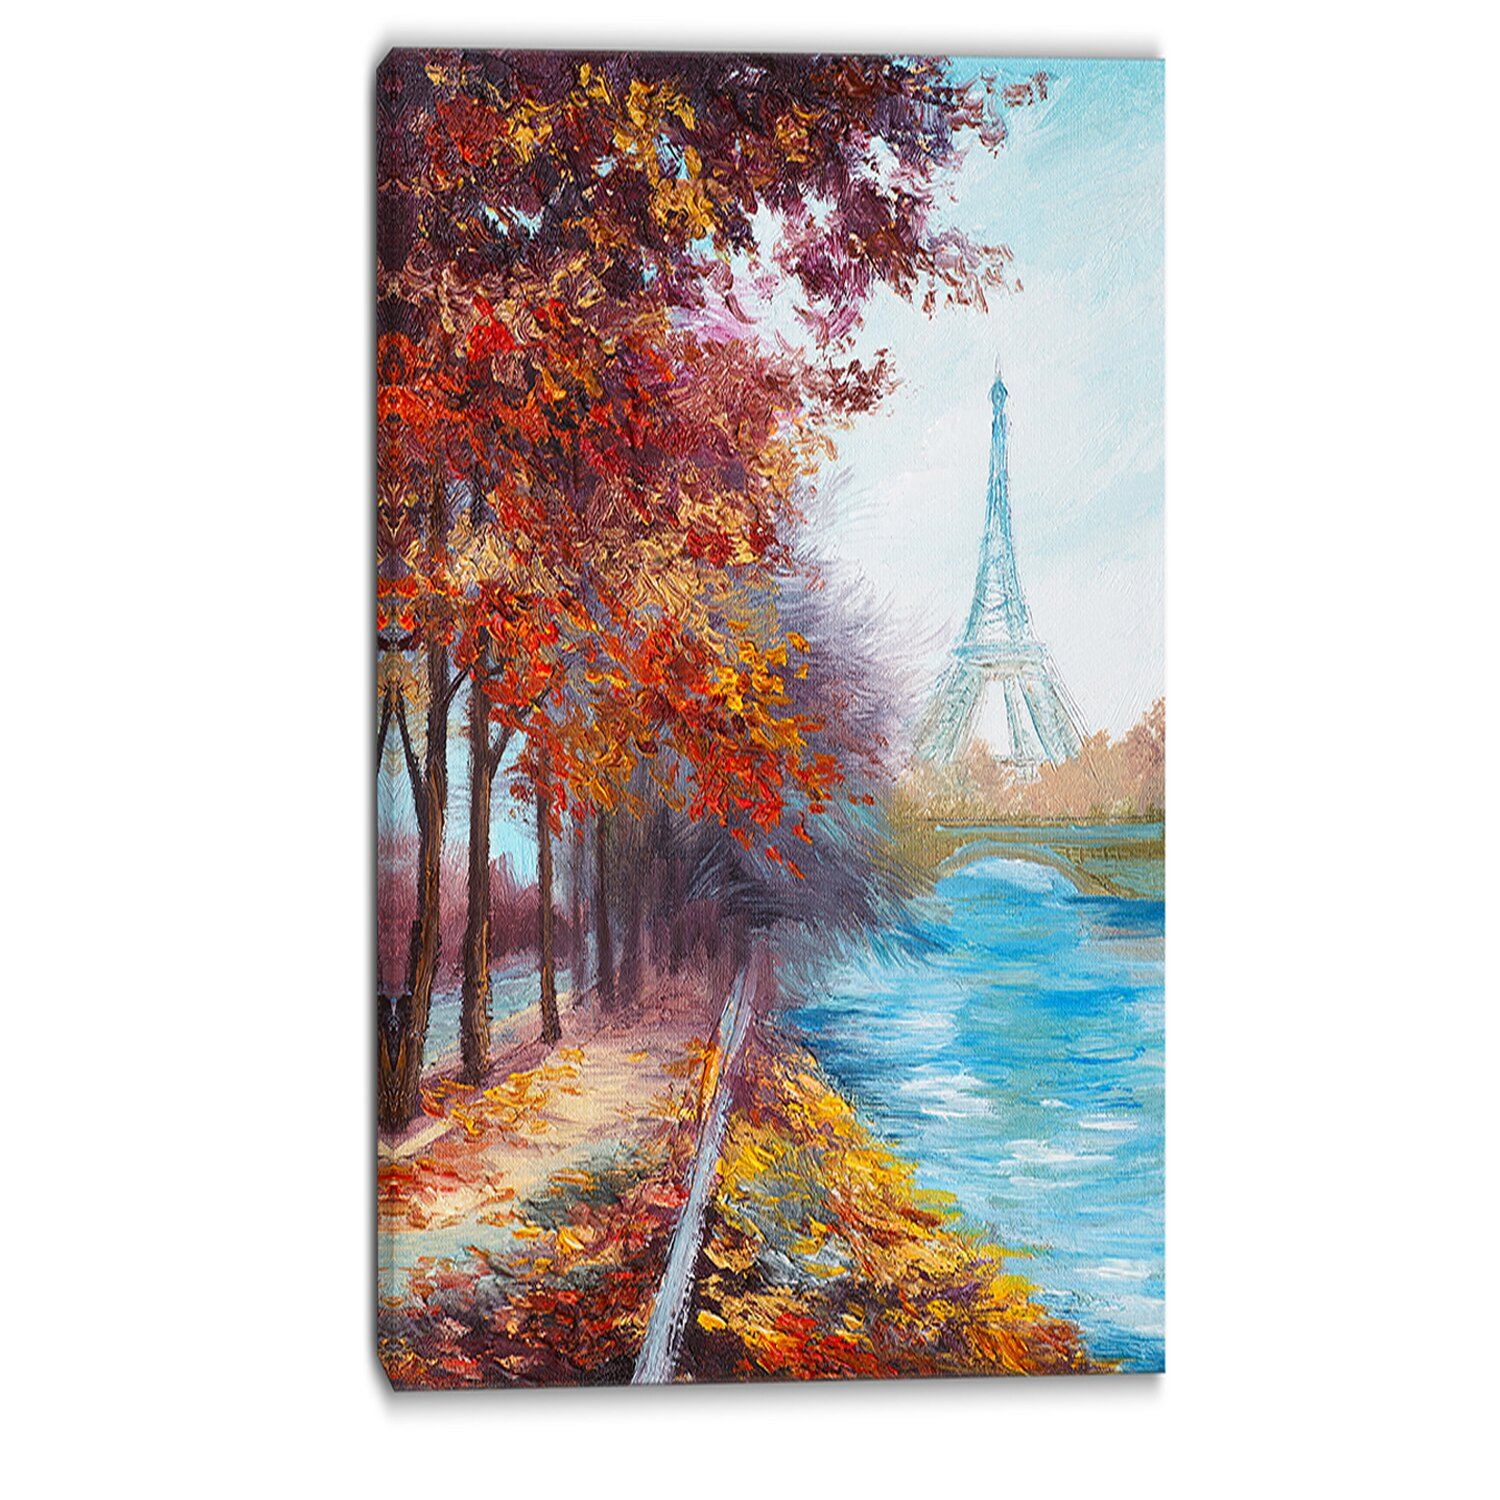 Designart Eiffel Tower View In Fall Landscape Painting